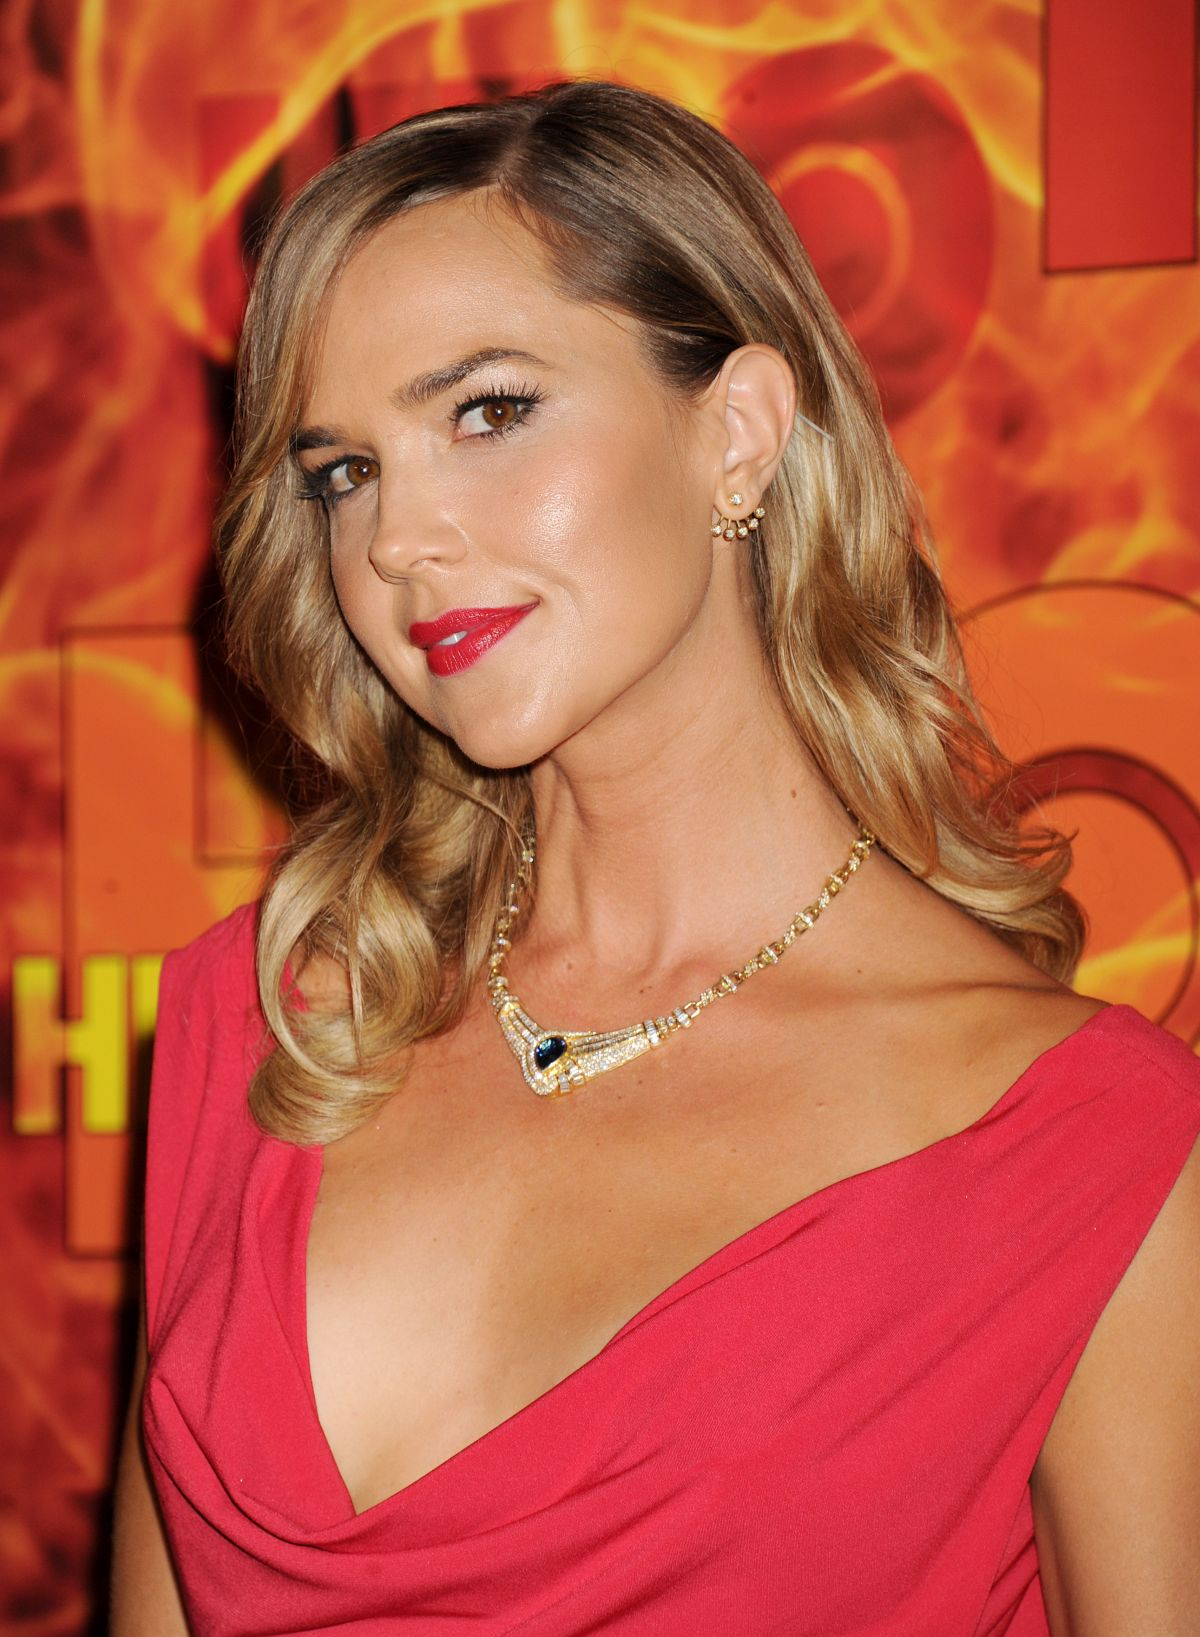 arielle kebbel height